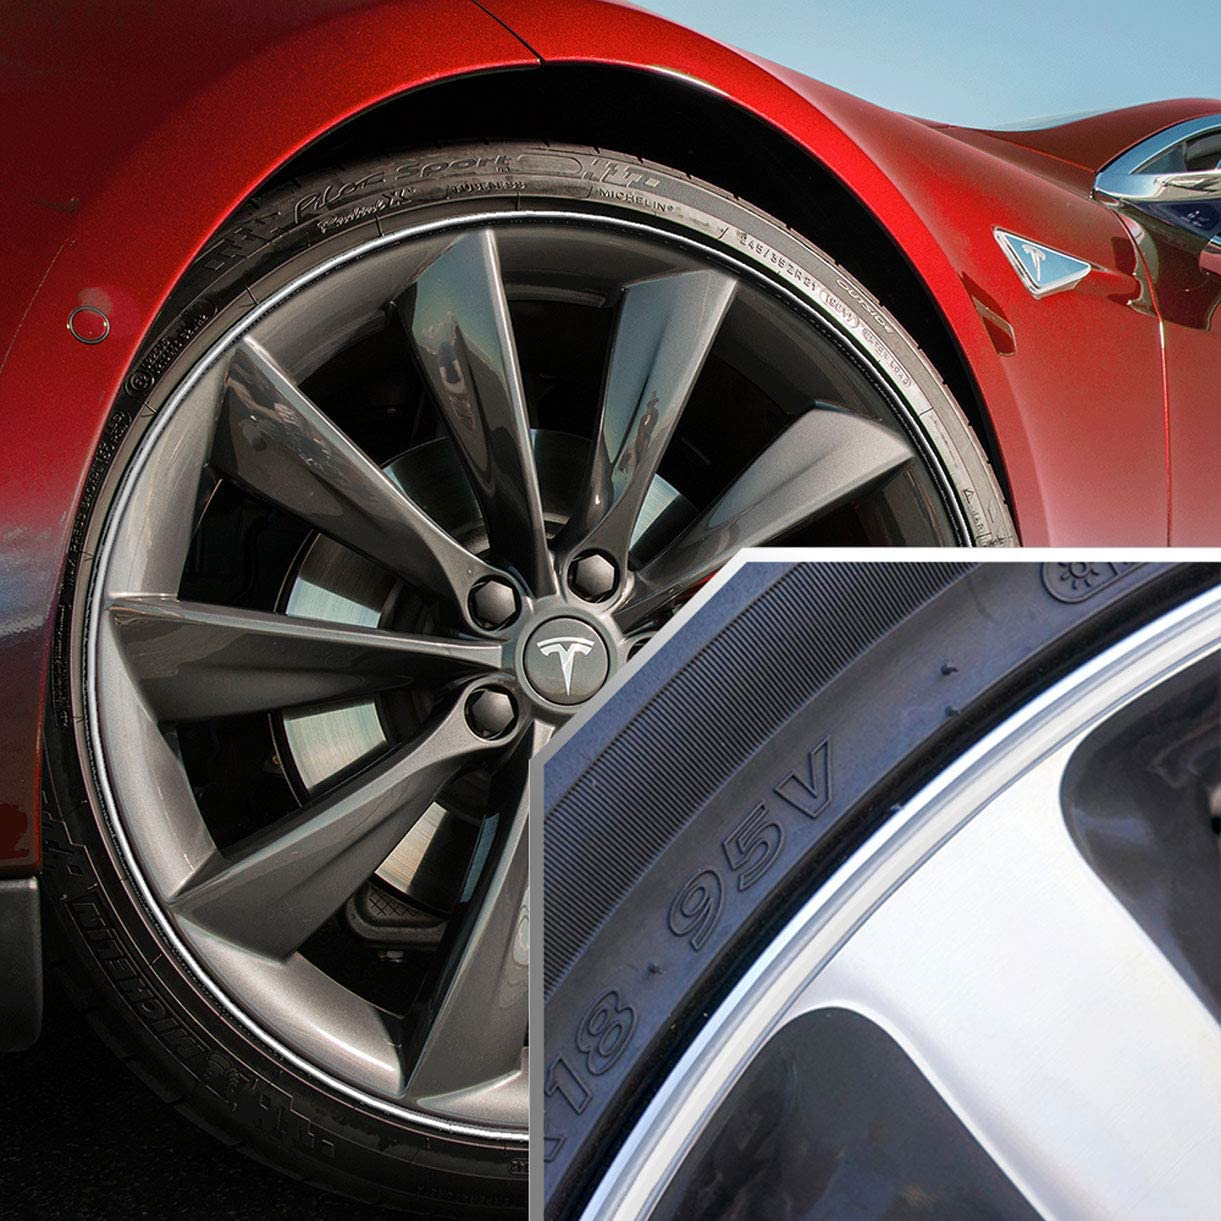 ECCPP Heavy Duty Wheel Guard Rim Protecting Trim Ring 20 inch Red Universal Fit for BMW Mercedes Benz Audi Ford Chevy Toyota Mazda All The car Styling 4X Piece